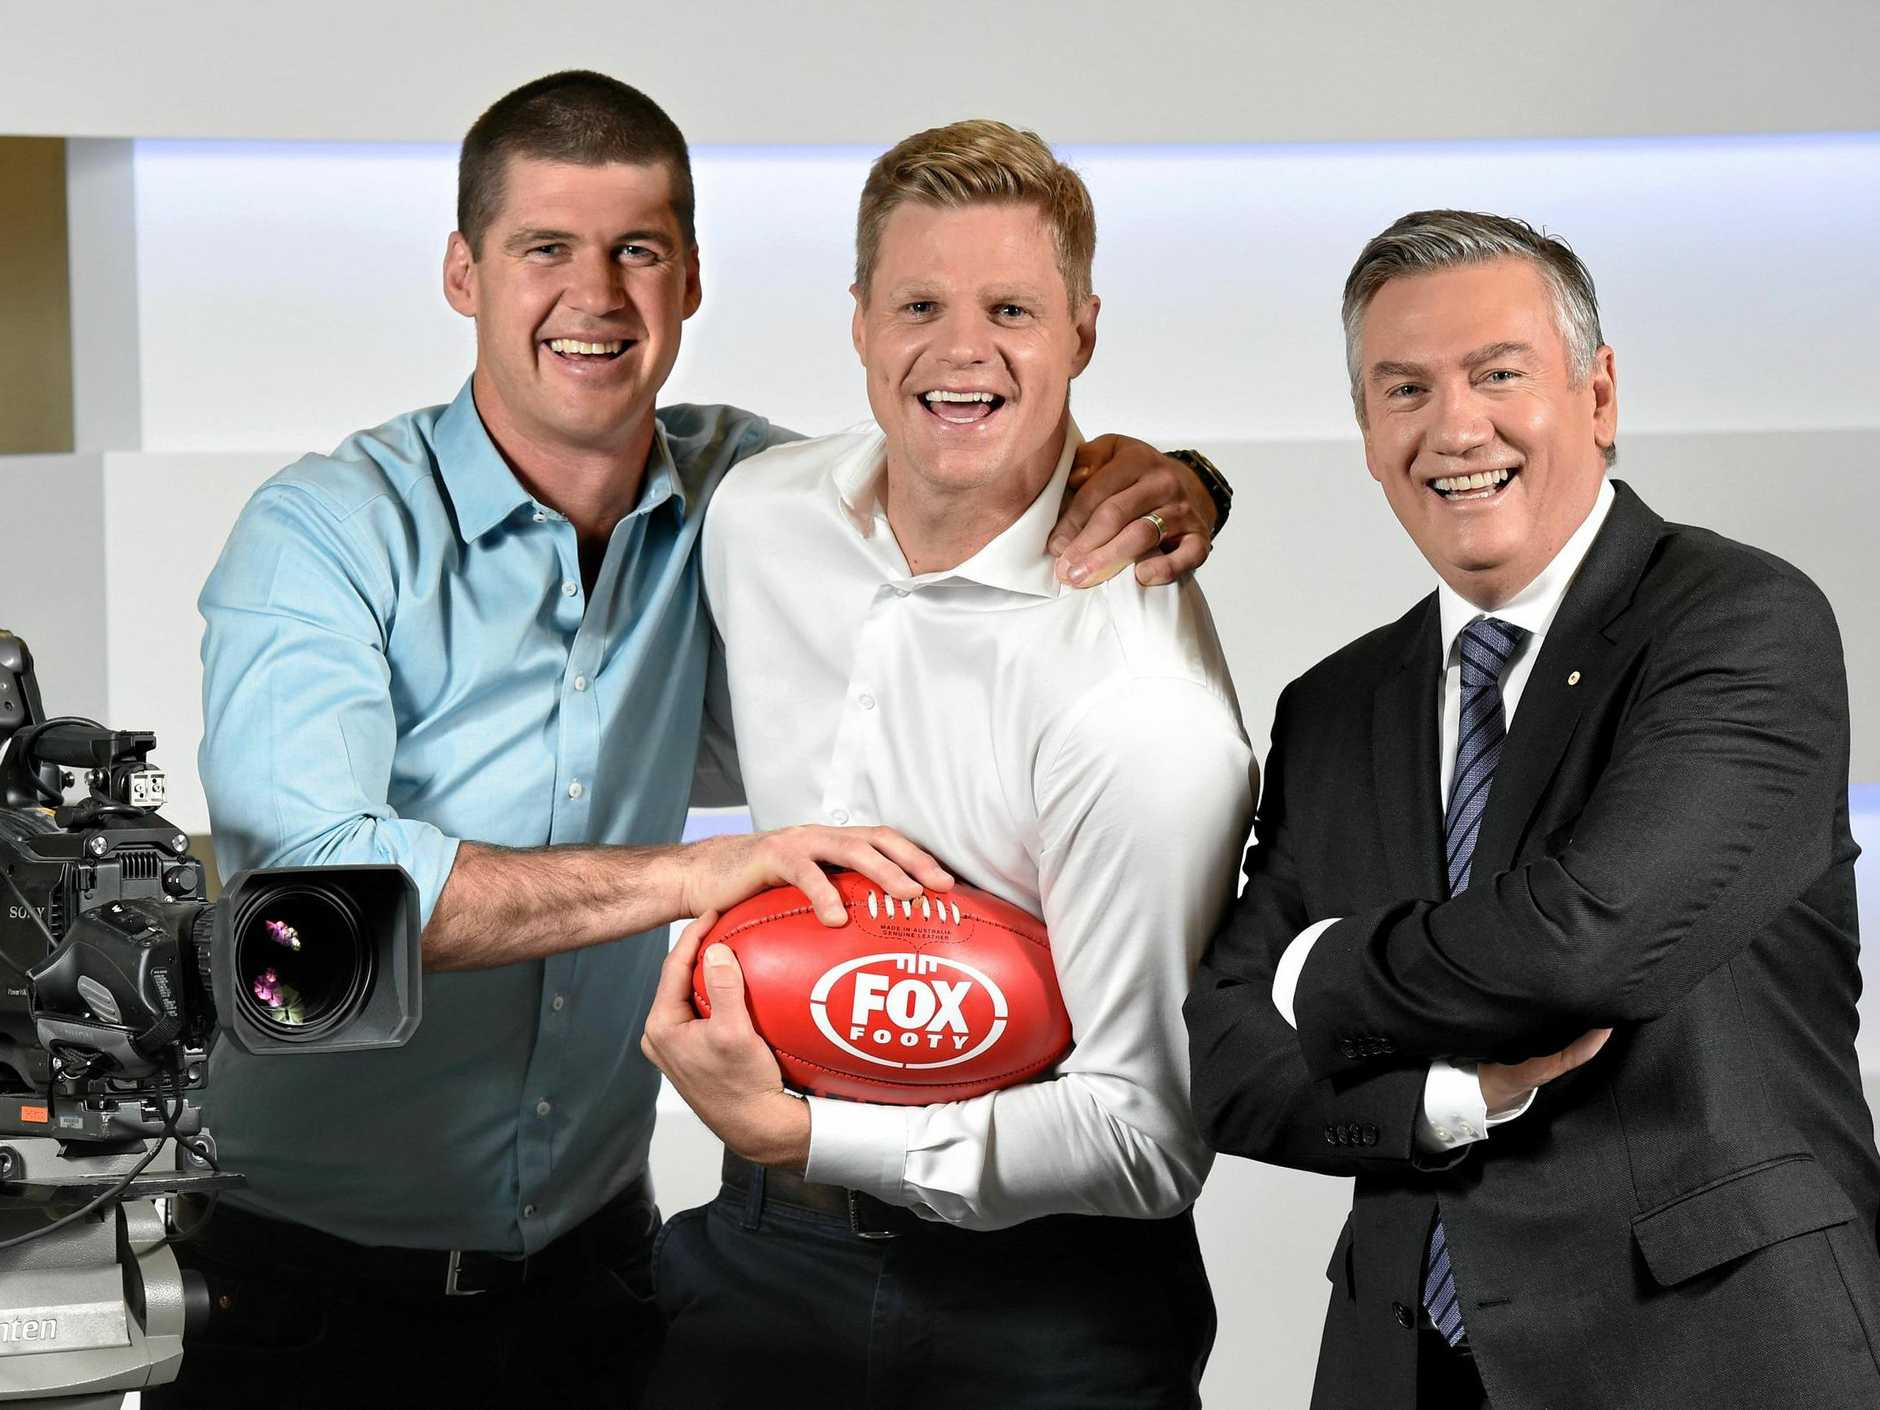 Jonathan Brown with former St Kilda captain Nick Riewoldt and Eddie Mcguire. Nick is joining the Fox Footy team. Picture: Kylie Else